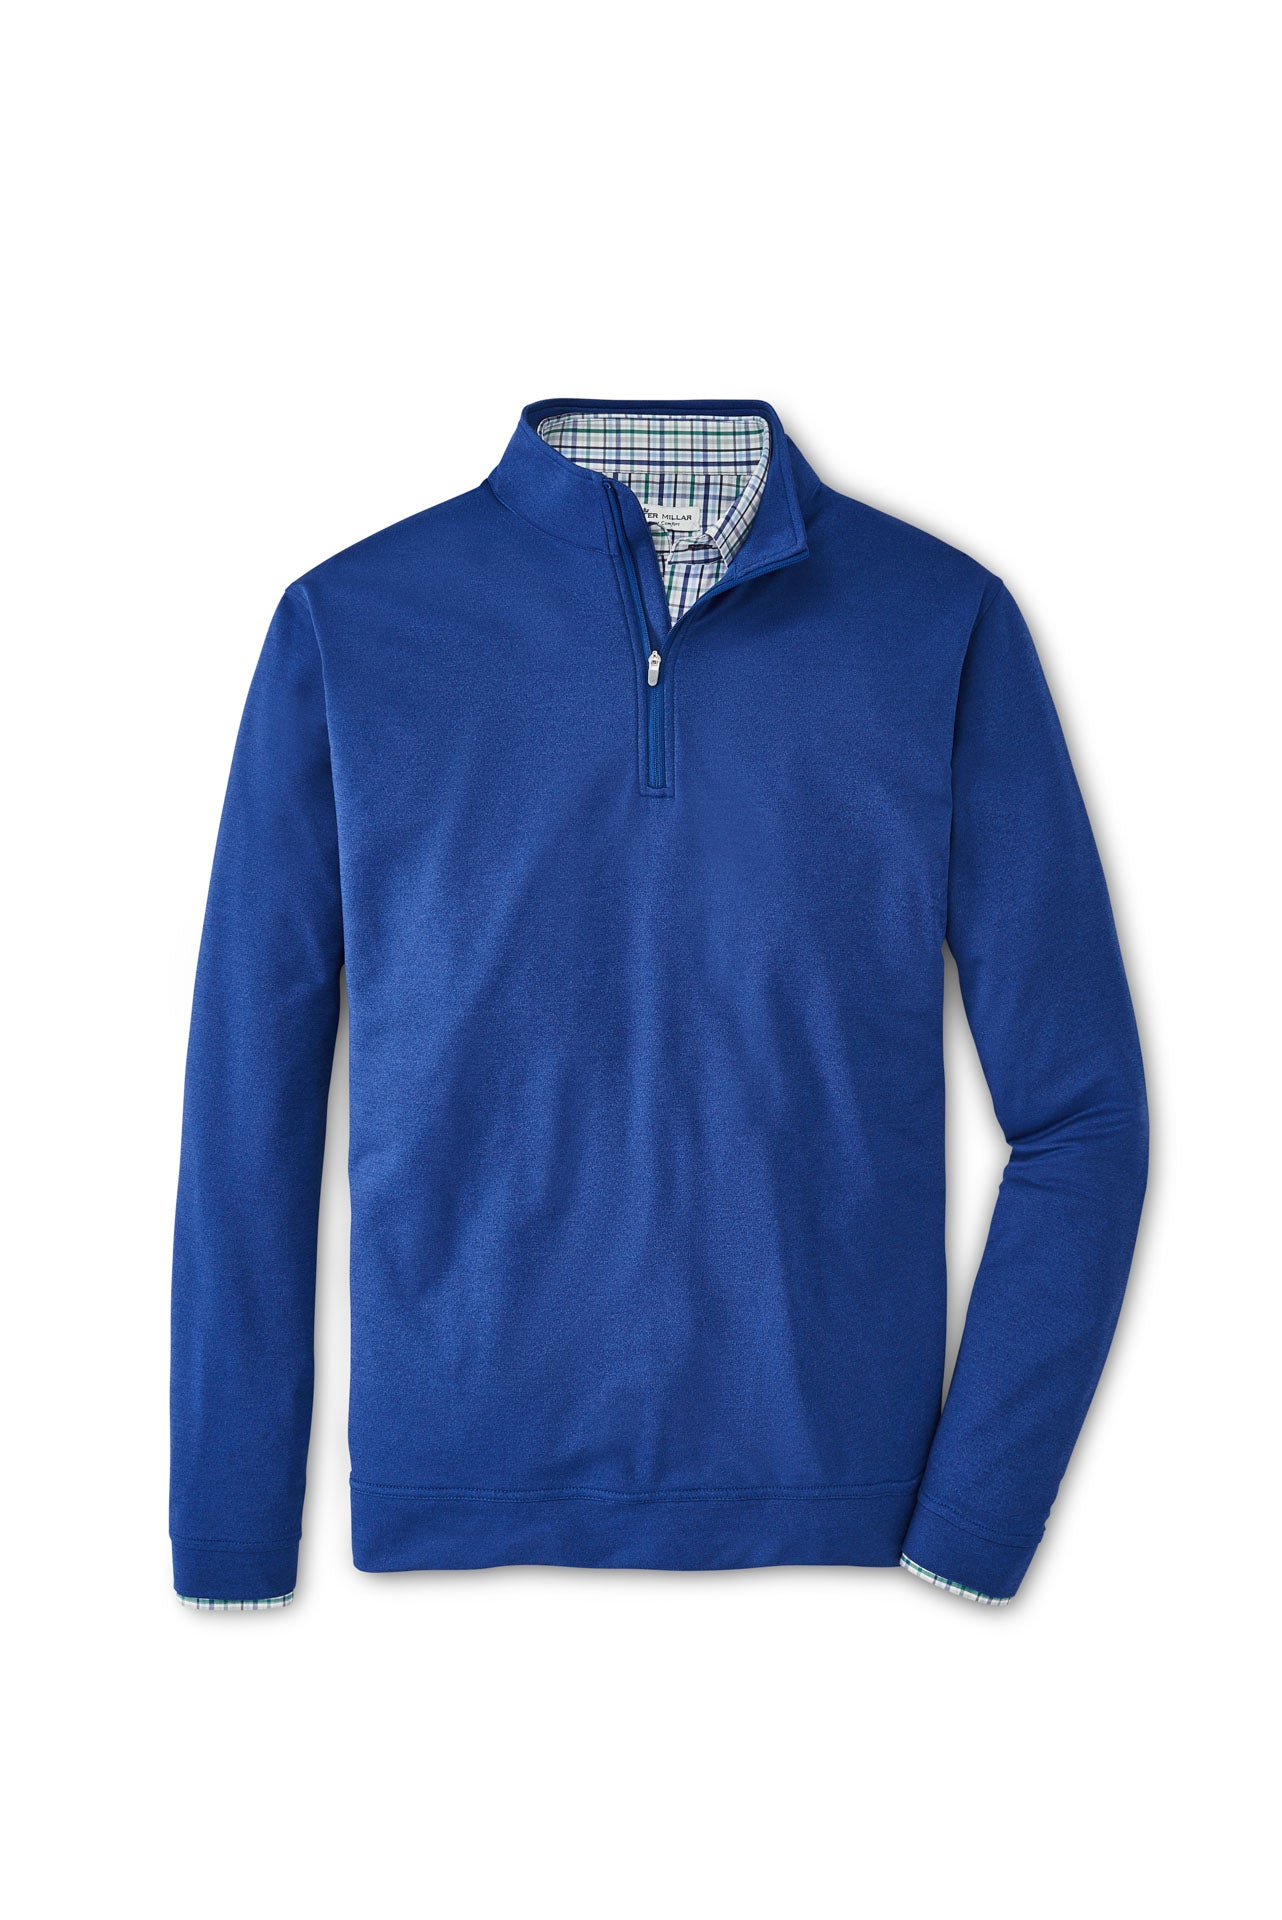 Perth Performance Quarter-Zip in York Blue